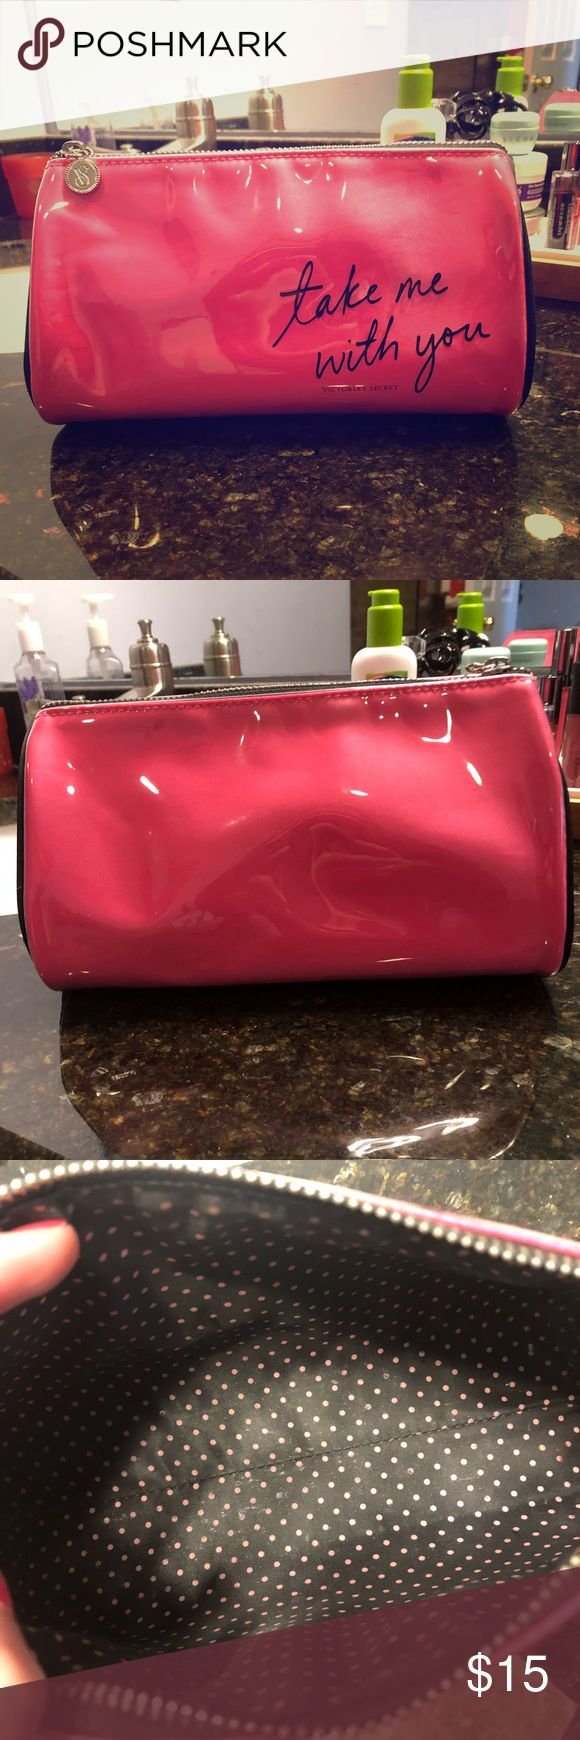 """Victoria Secret Plastic Coated Cosmetics Bag Pre-loved, EUC, makeup bag from VS. Bright pink color, black piping around the outside rim. Inside lining is black with pink polka dots. """"Take Me with You"""" is written in black on front. The outside is covered in clear plastic. The entire bag inside and out has been wiped clean. Zip top, can fit tons of makeup essentials including a larger size palette.  Measures: 9"""" across 5.5"""" from top to bottom, top opening measures 6"""".  Smoke free home. This is…"""